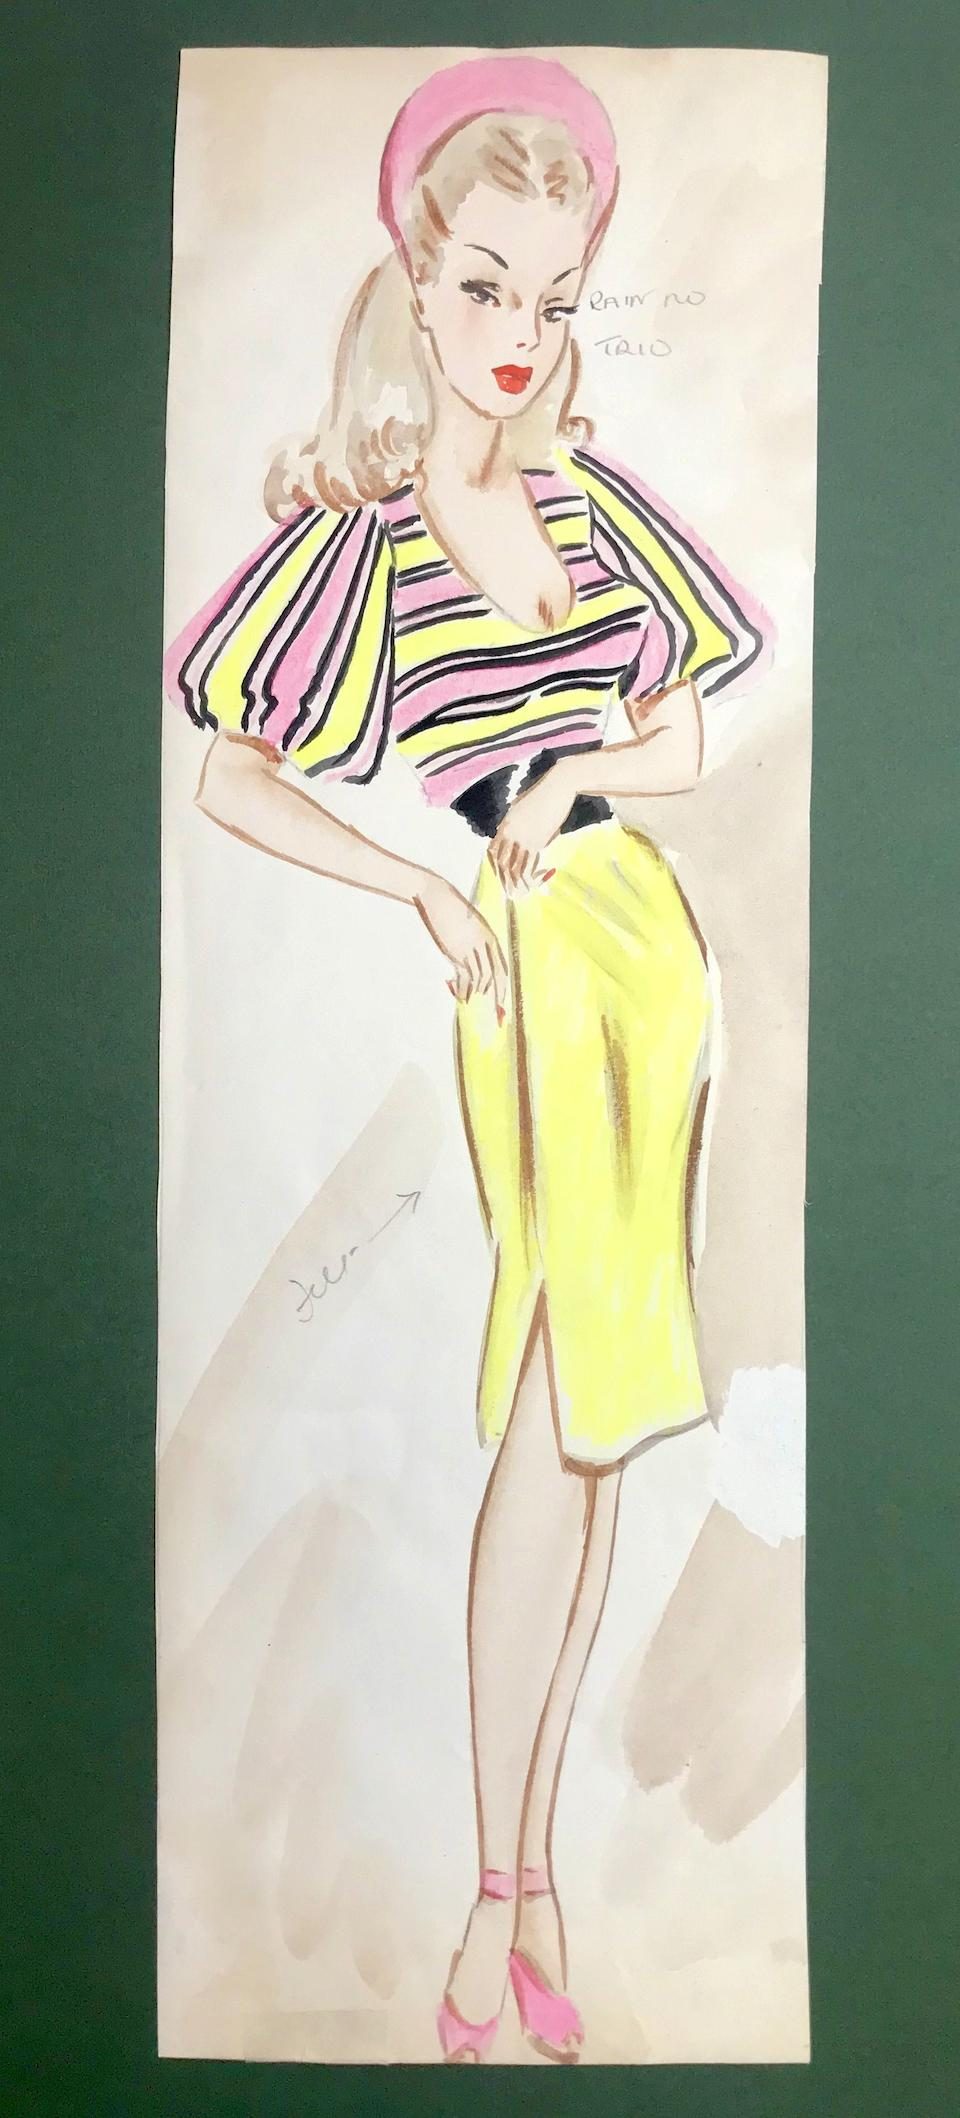 Ronald Cobb (British, 1907-1977): An original costume design of a Murray's Cabaret Club showgirl in a pink and yellow outfit, 1950's,